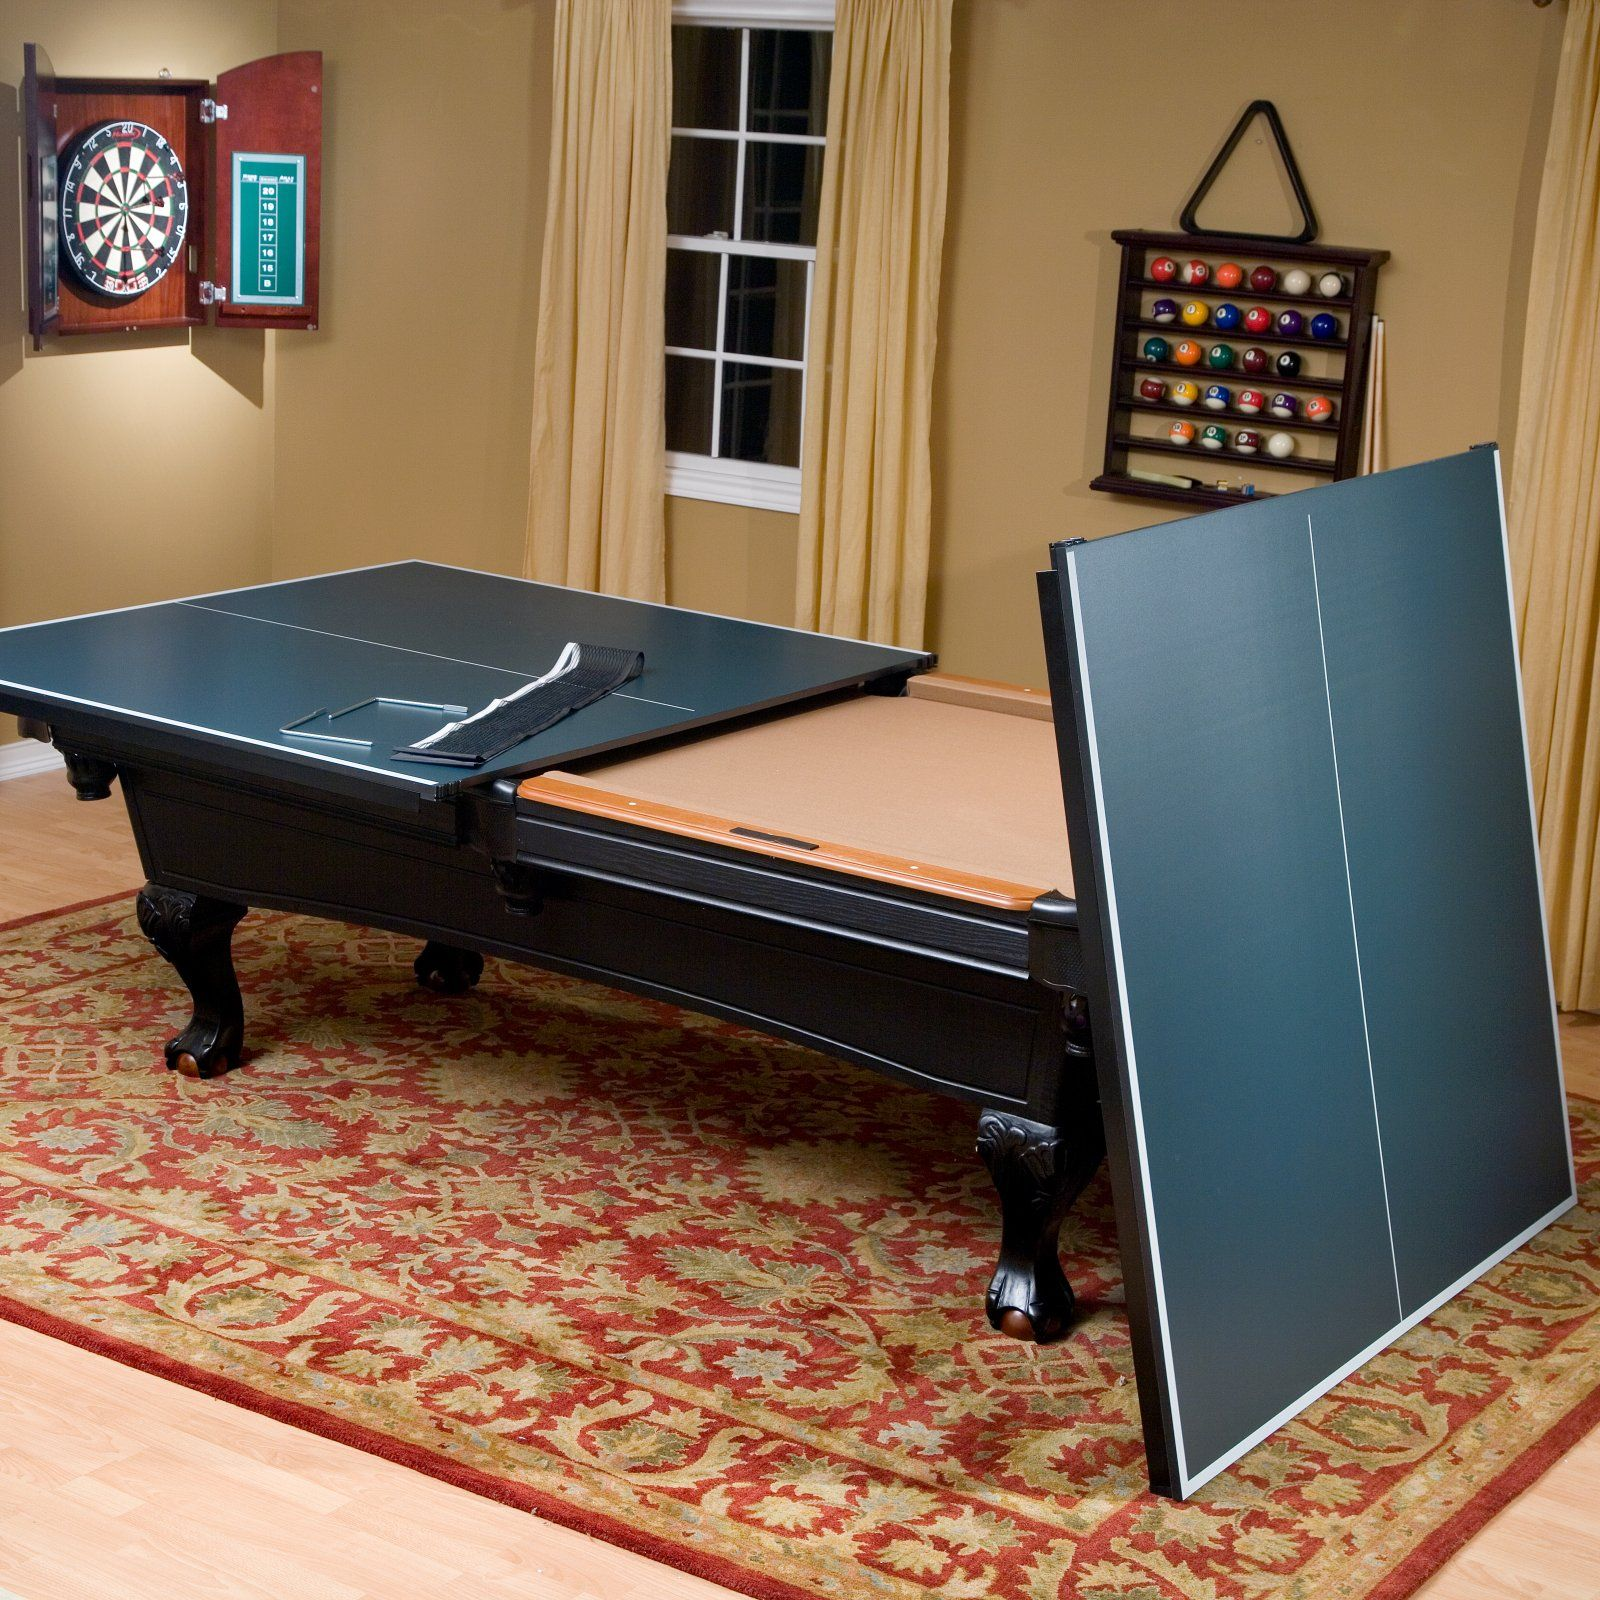 Ping Pong Pool Table For Ryan Would Love This In The Game Room When It Finally Becomes A Game Room And Not A Play Kelder Inrichting Huis Ideeen Herenkamer